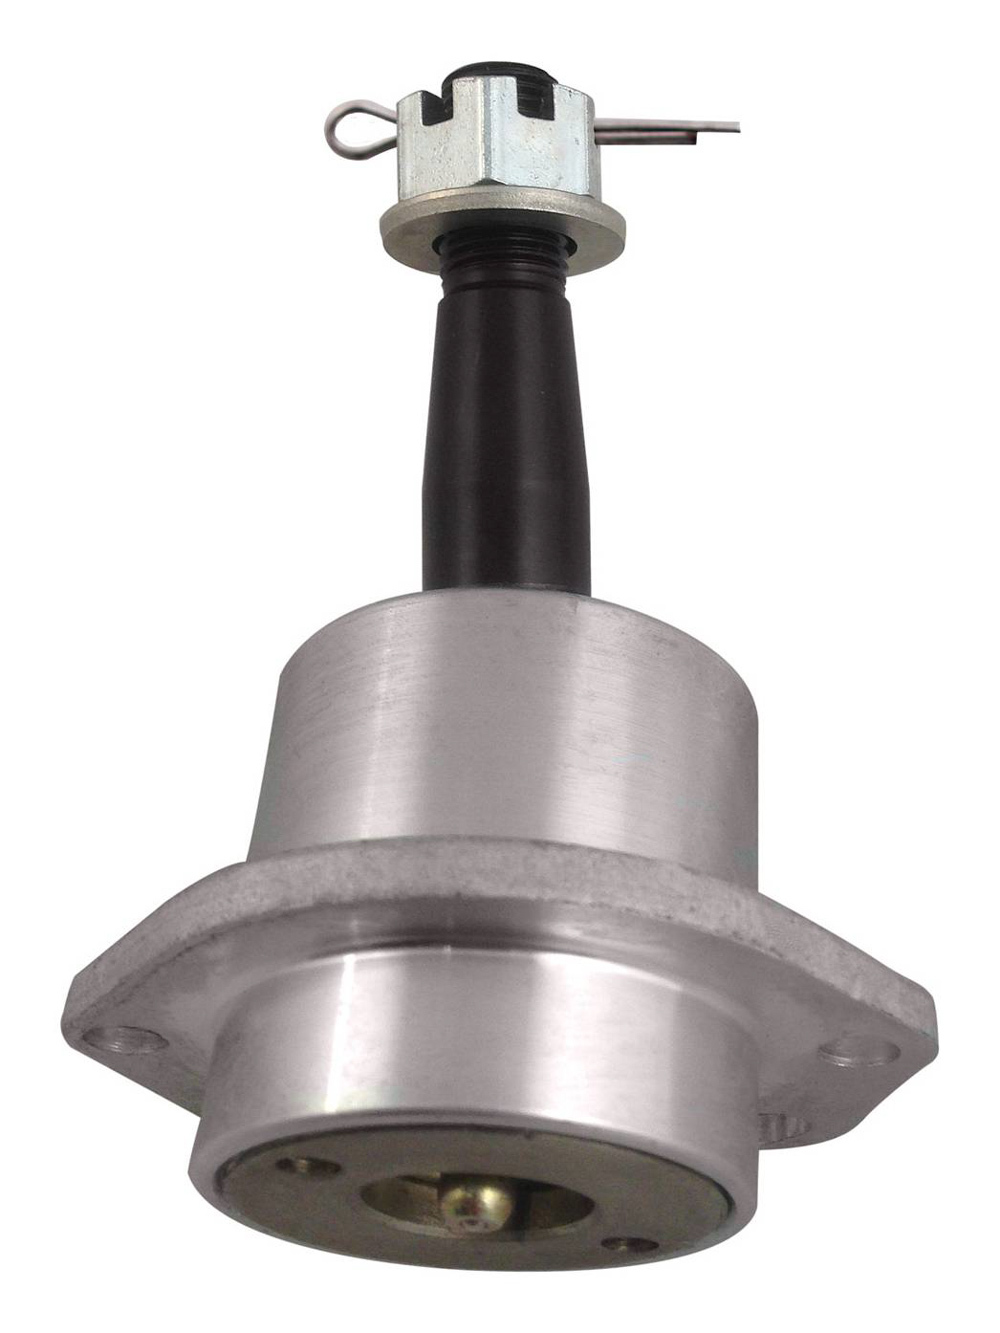 QA1 1210-205B Ball Joint, Greasable, Upper, Bolt-In, 2.000 in/ft Taper, 4.093 in Stud, 1/2-20 in Thread, Steel, Each